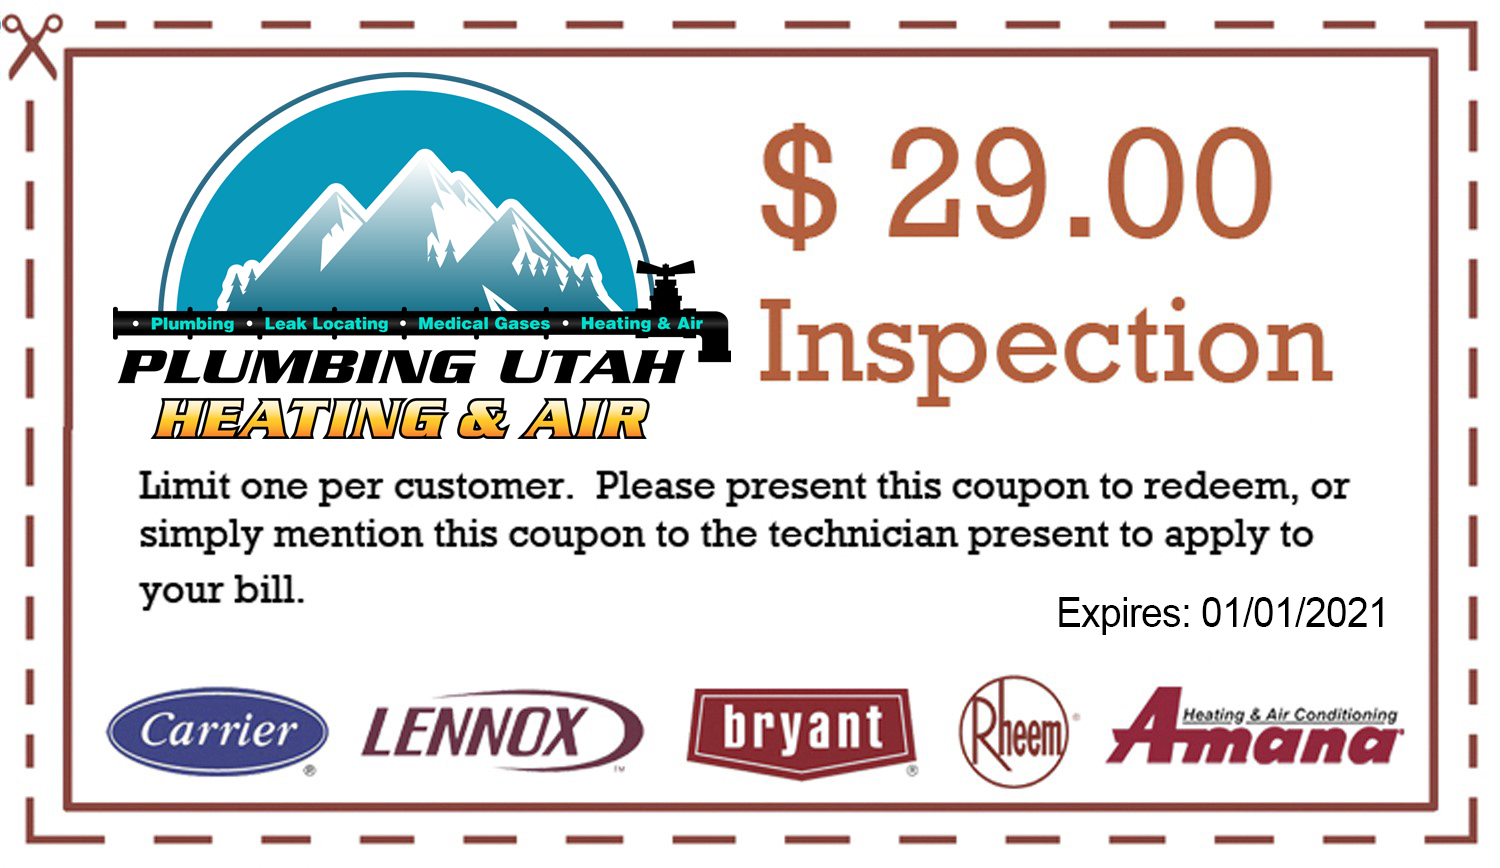 plumbing-utah-hvac-coupon-29-dollar-inspection